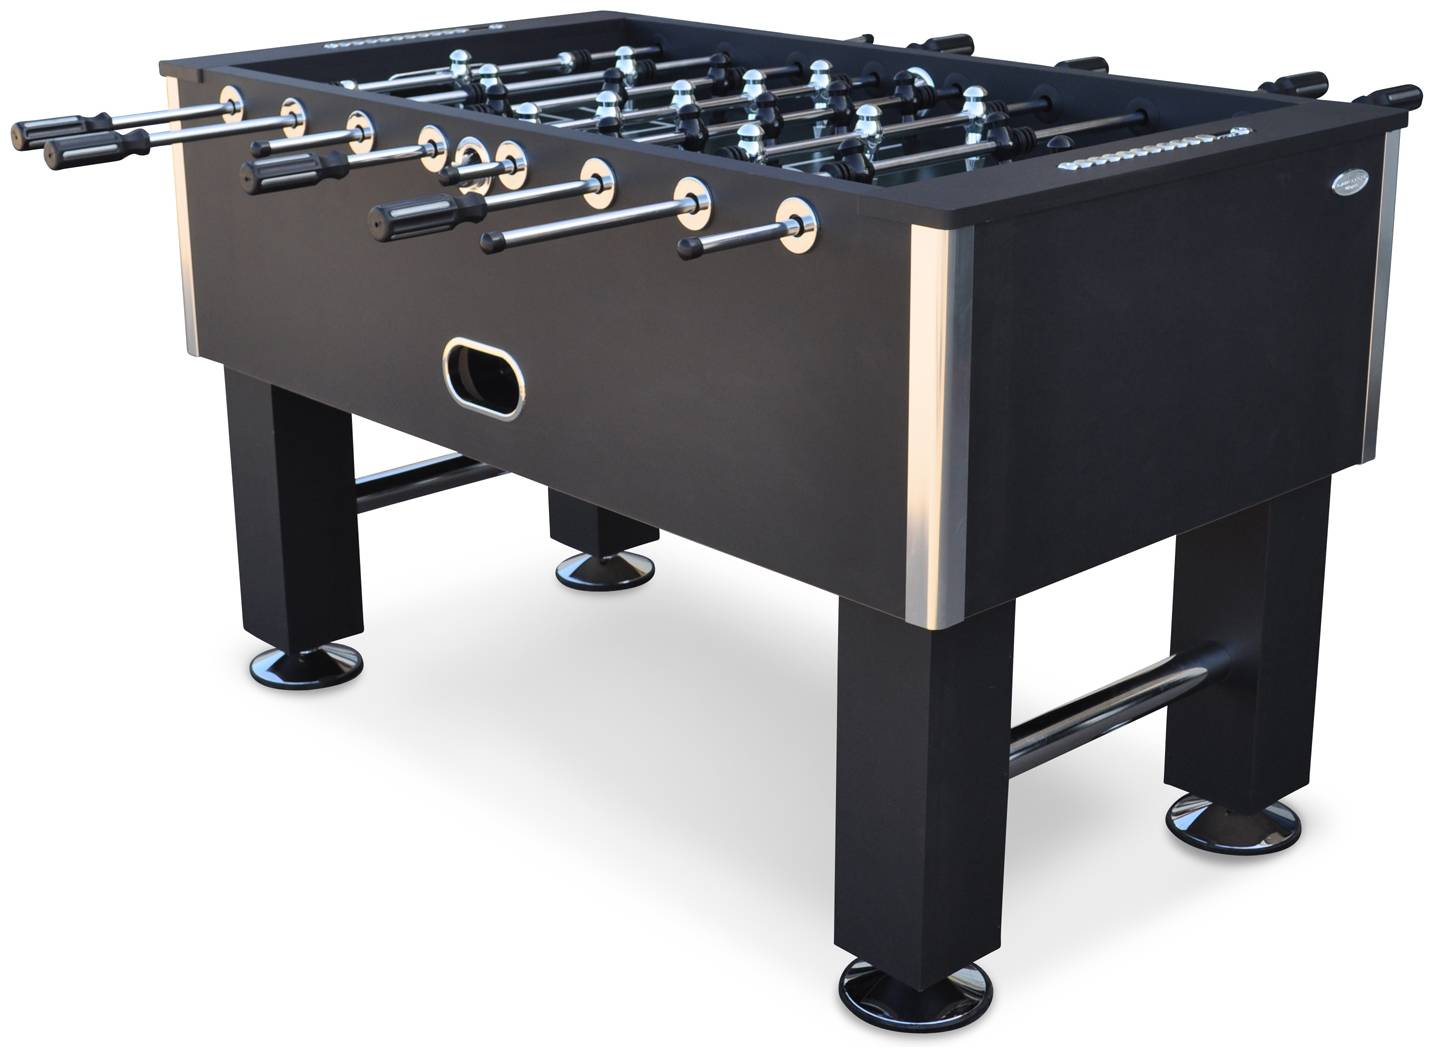 Gamesson Foosball/Fotbollsspel Gamesson Professional